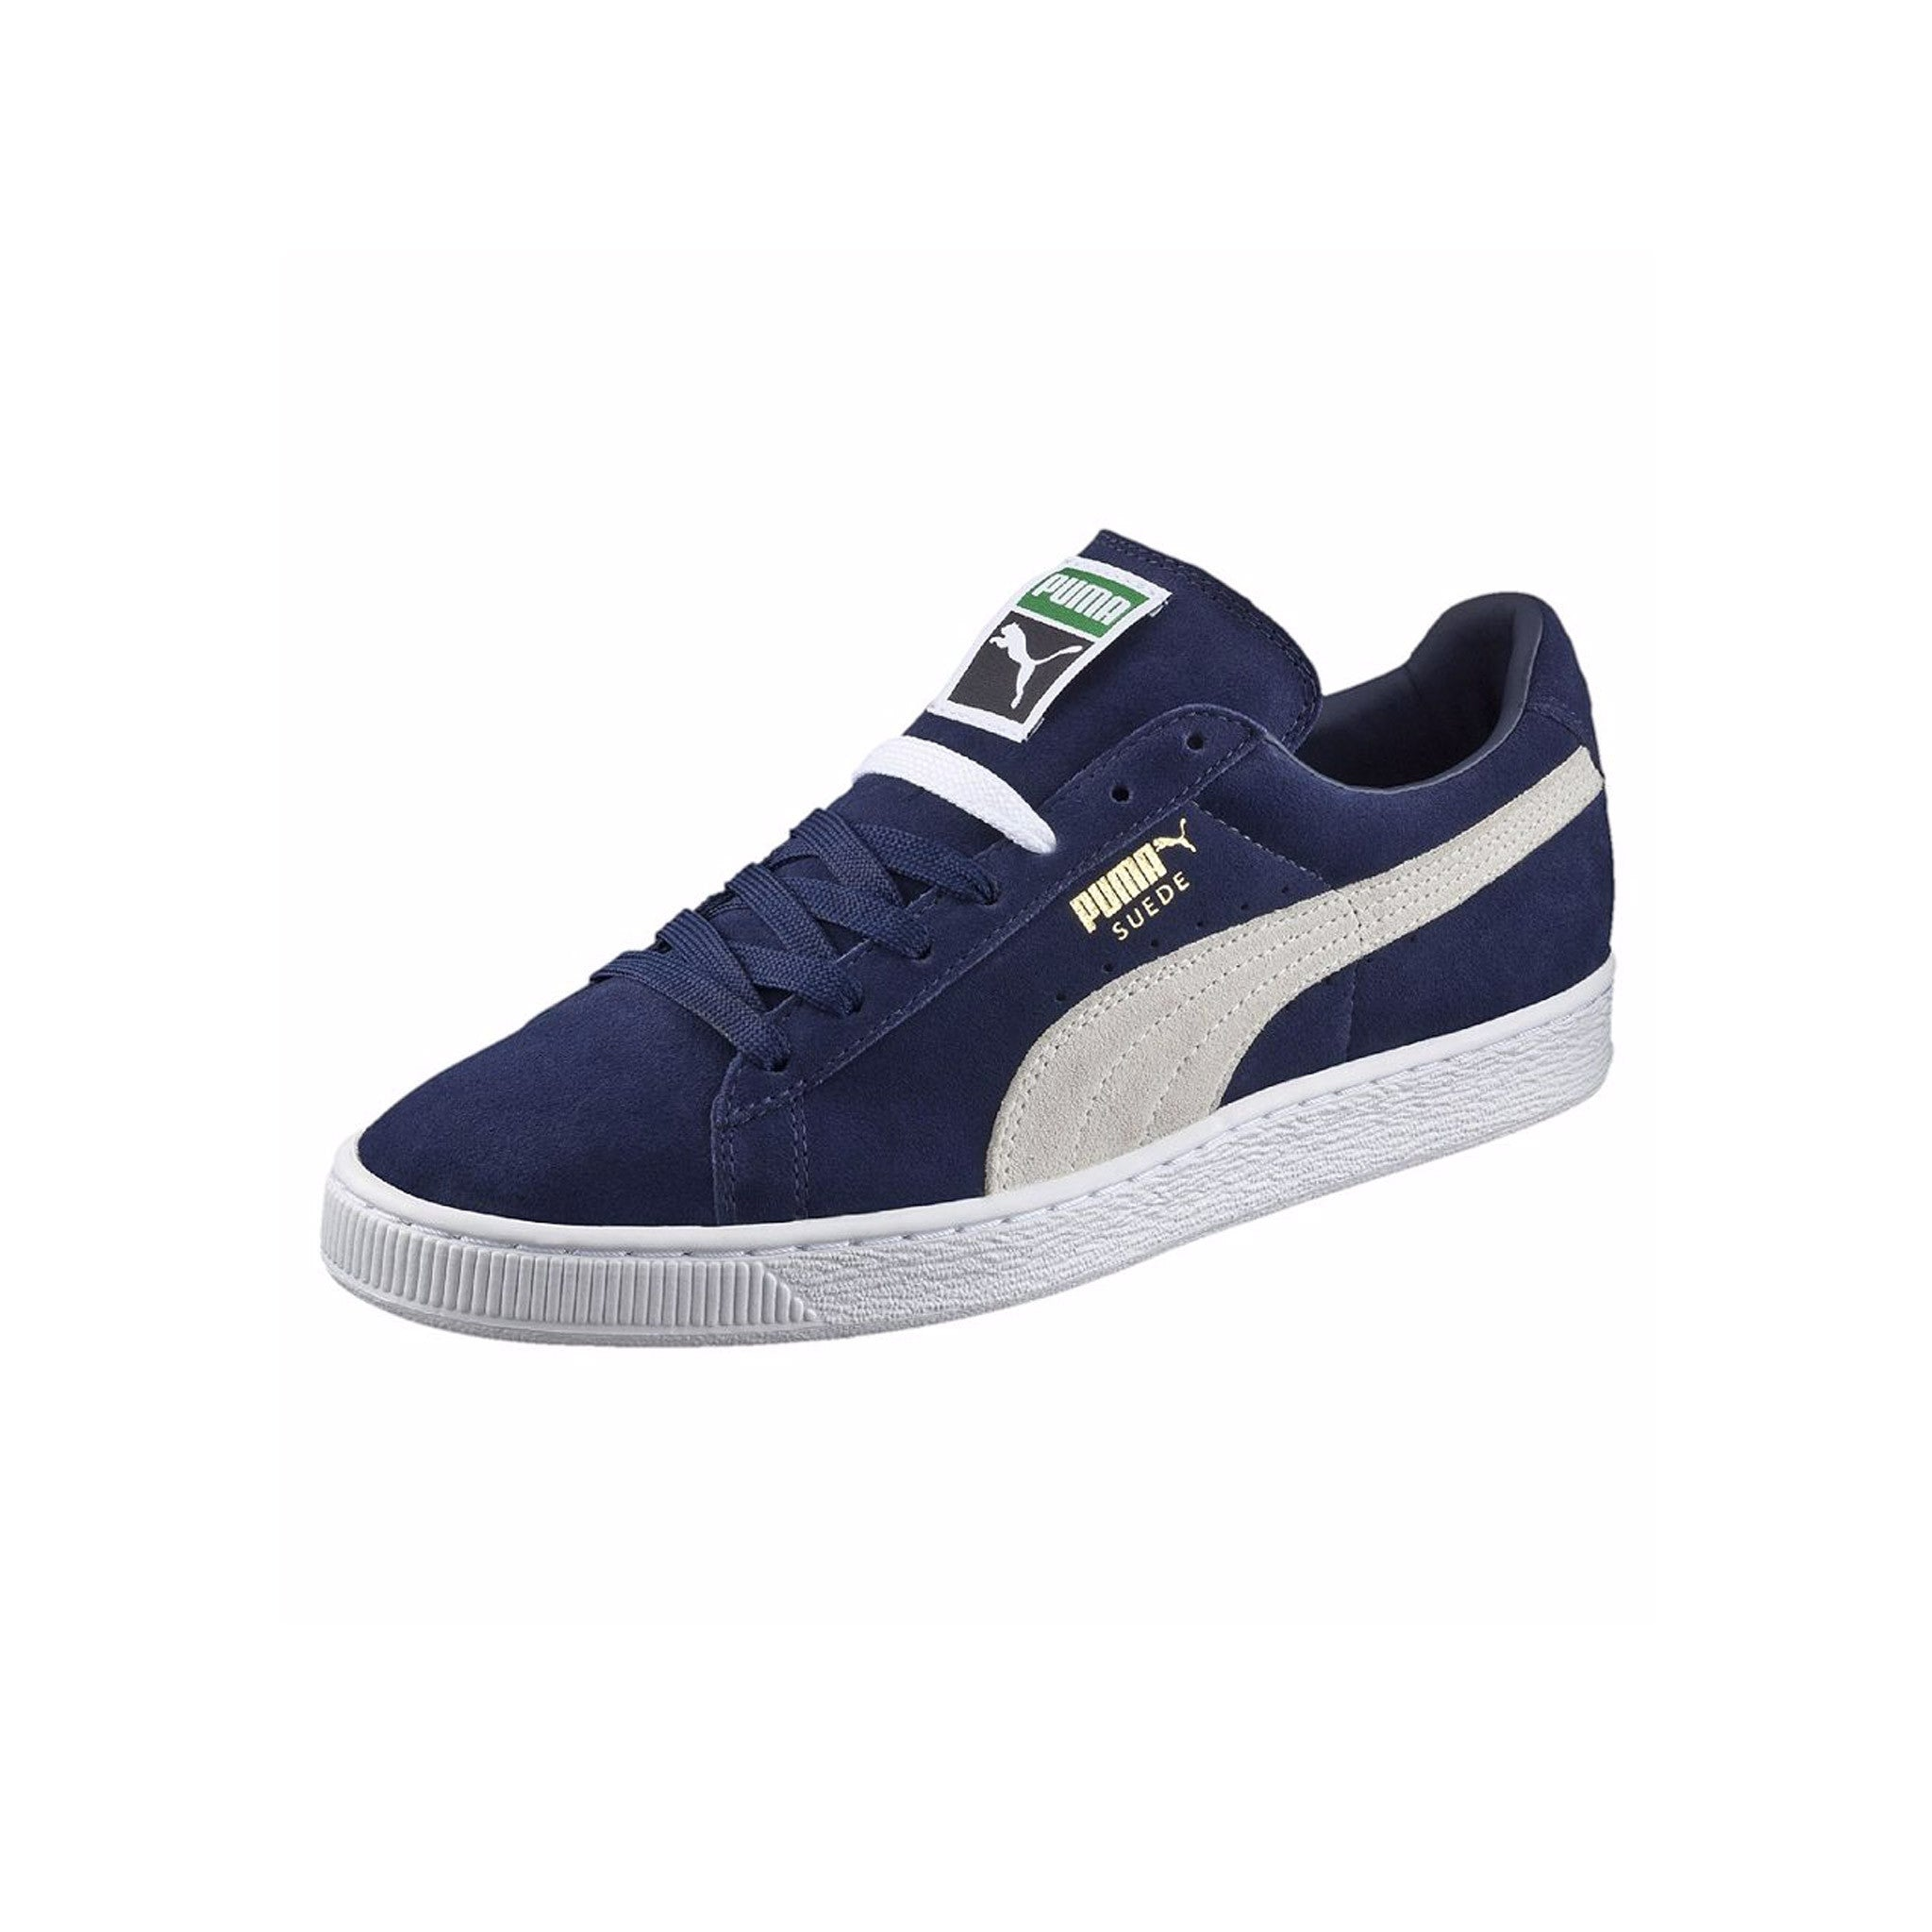 Suede Classic Puma Sneakers Peacoat Angled View